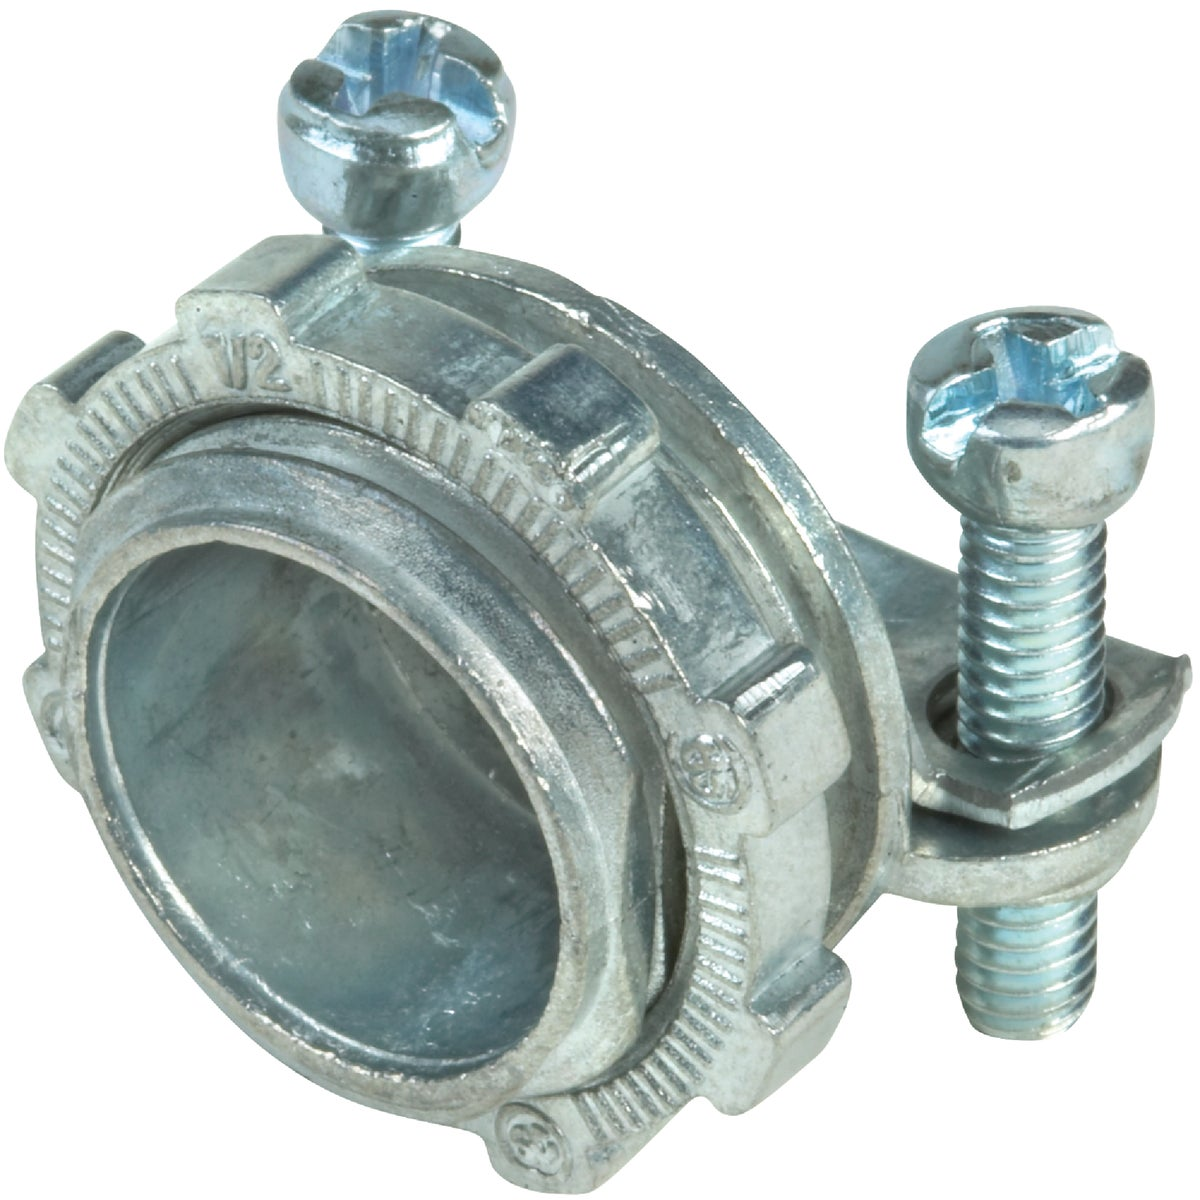 """3/8"""" BOX CONNECTOR - NC301M5 by Thomas & Betts"""